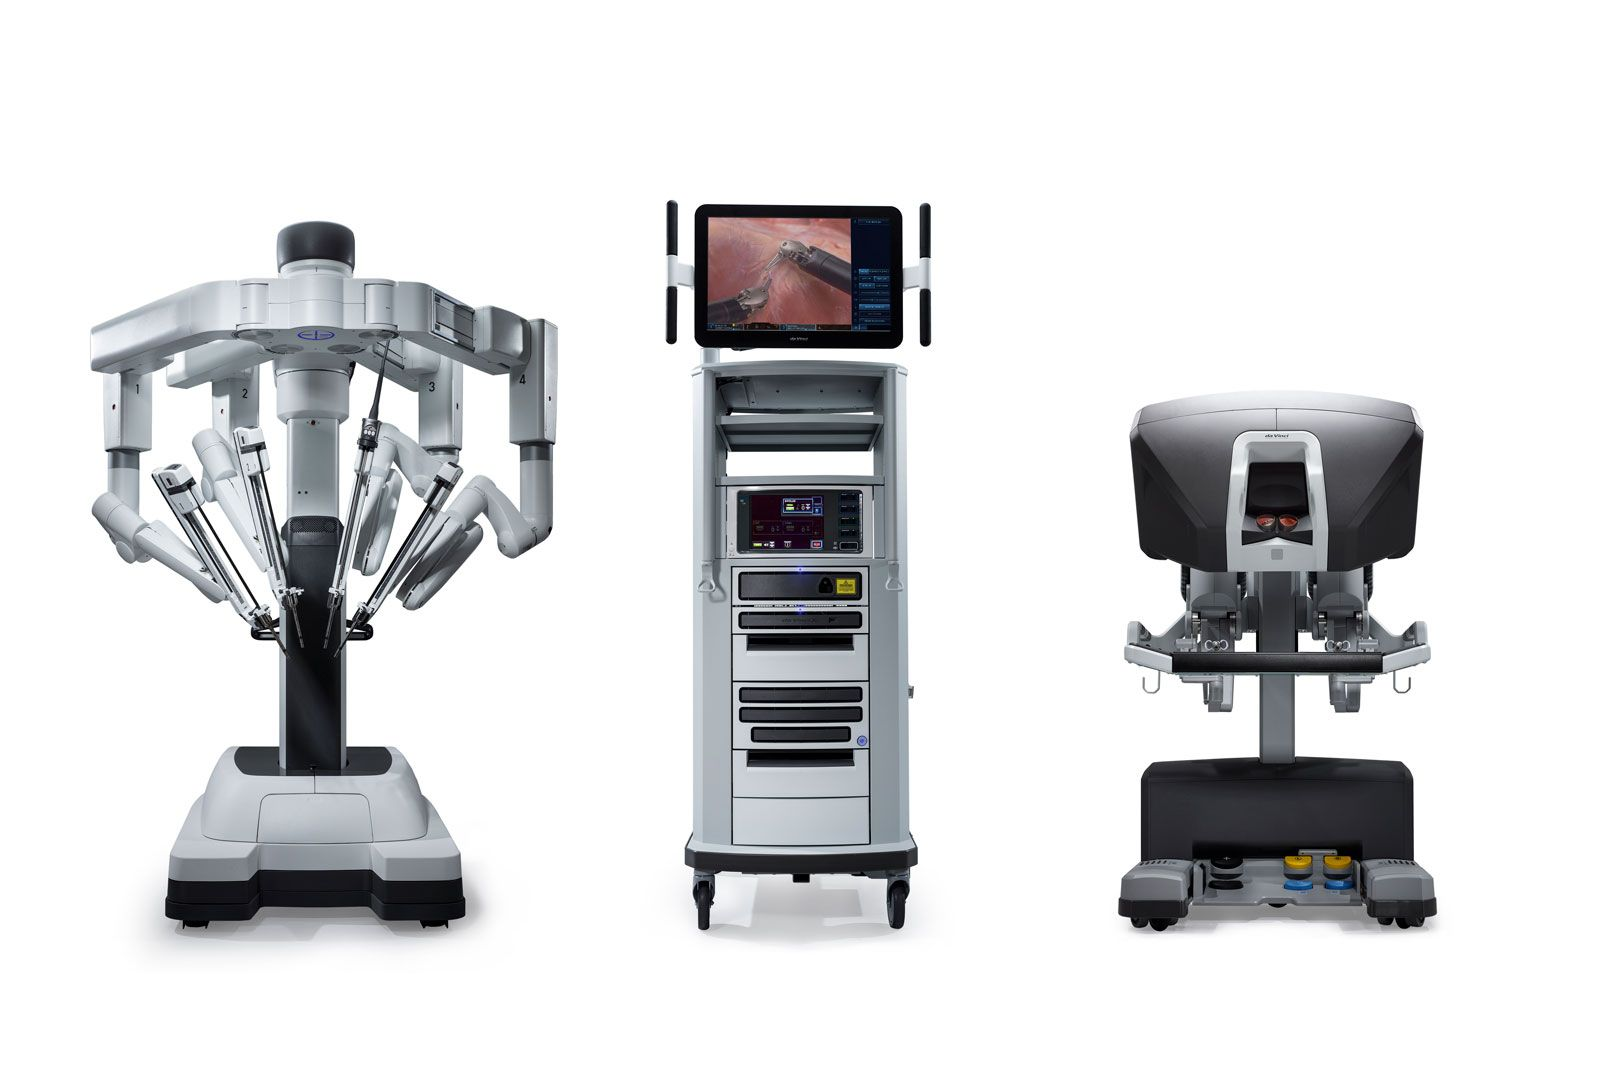 img128_xi_trio_of_system_components_high_res_184859_1600px